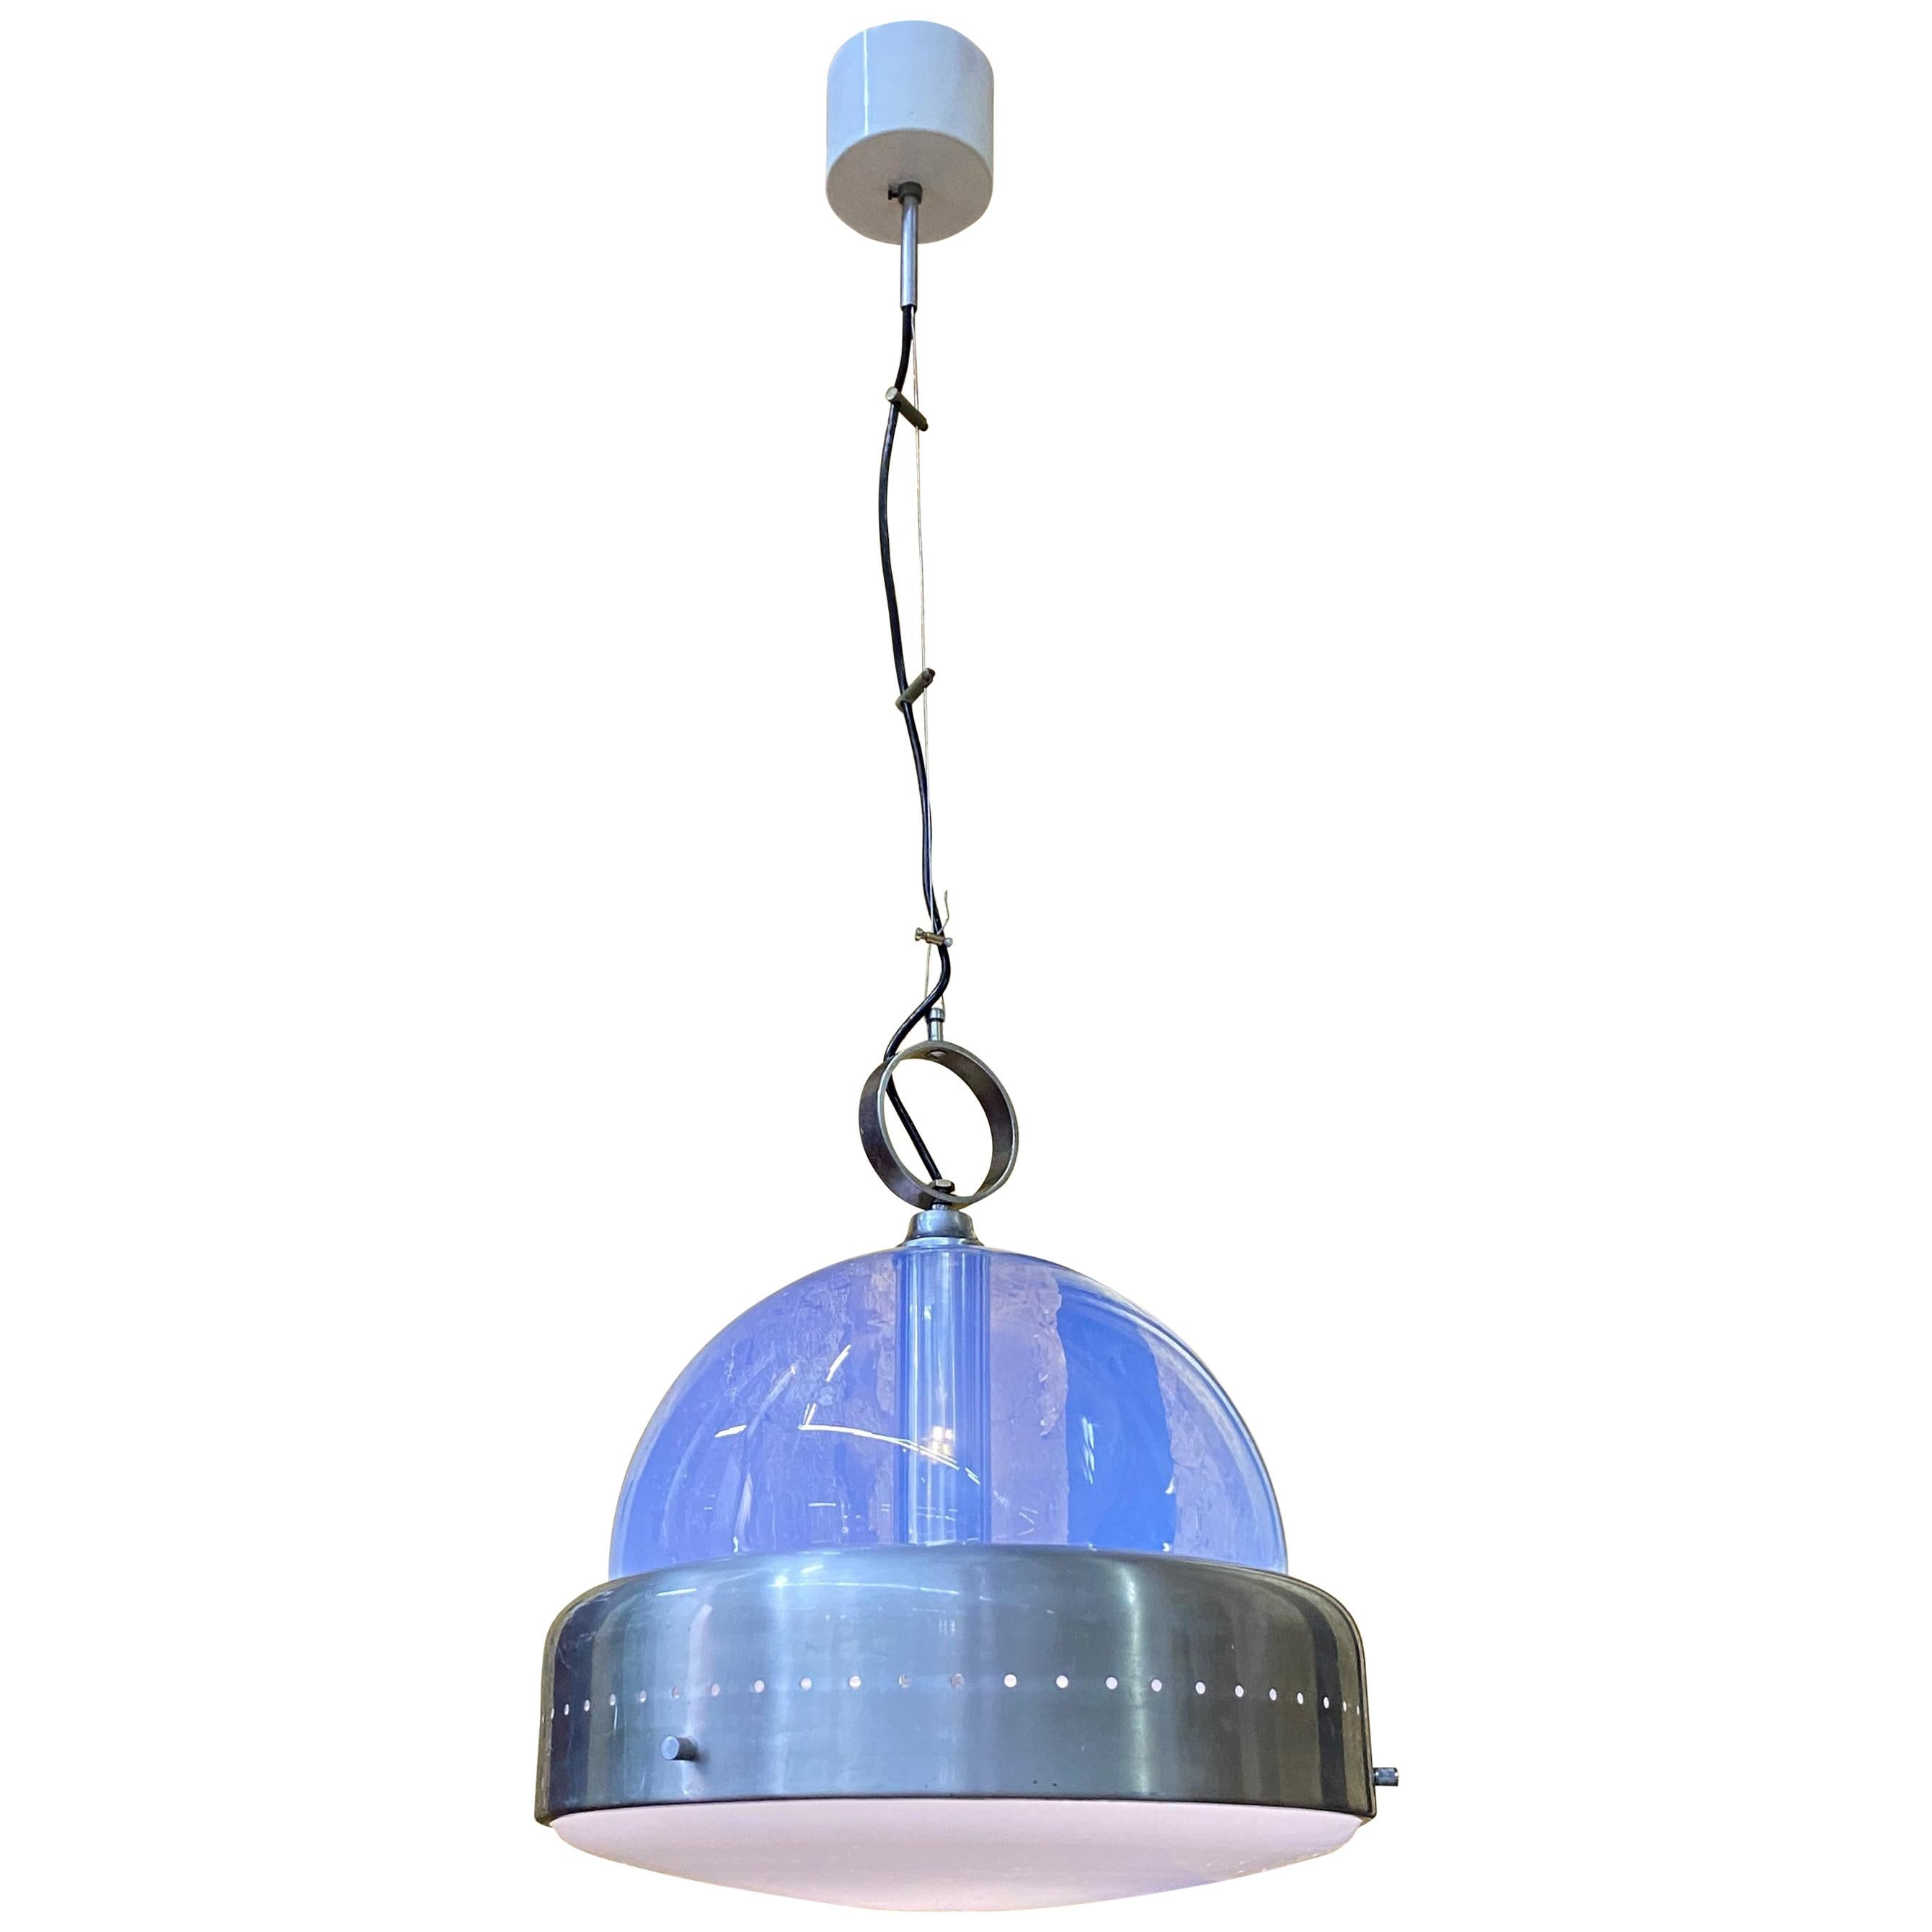 Space Age Pendant Light in Murano Glass, Italy, 1960s